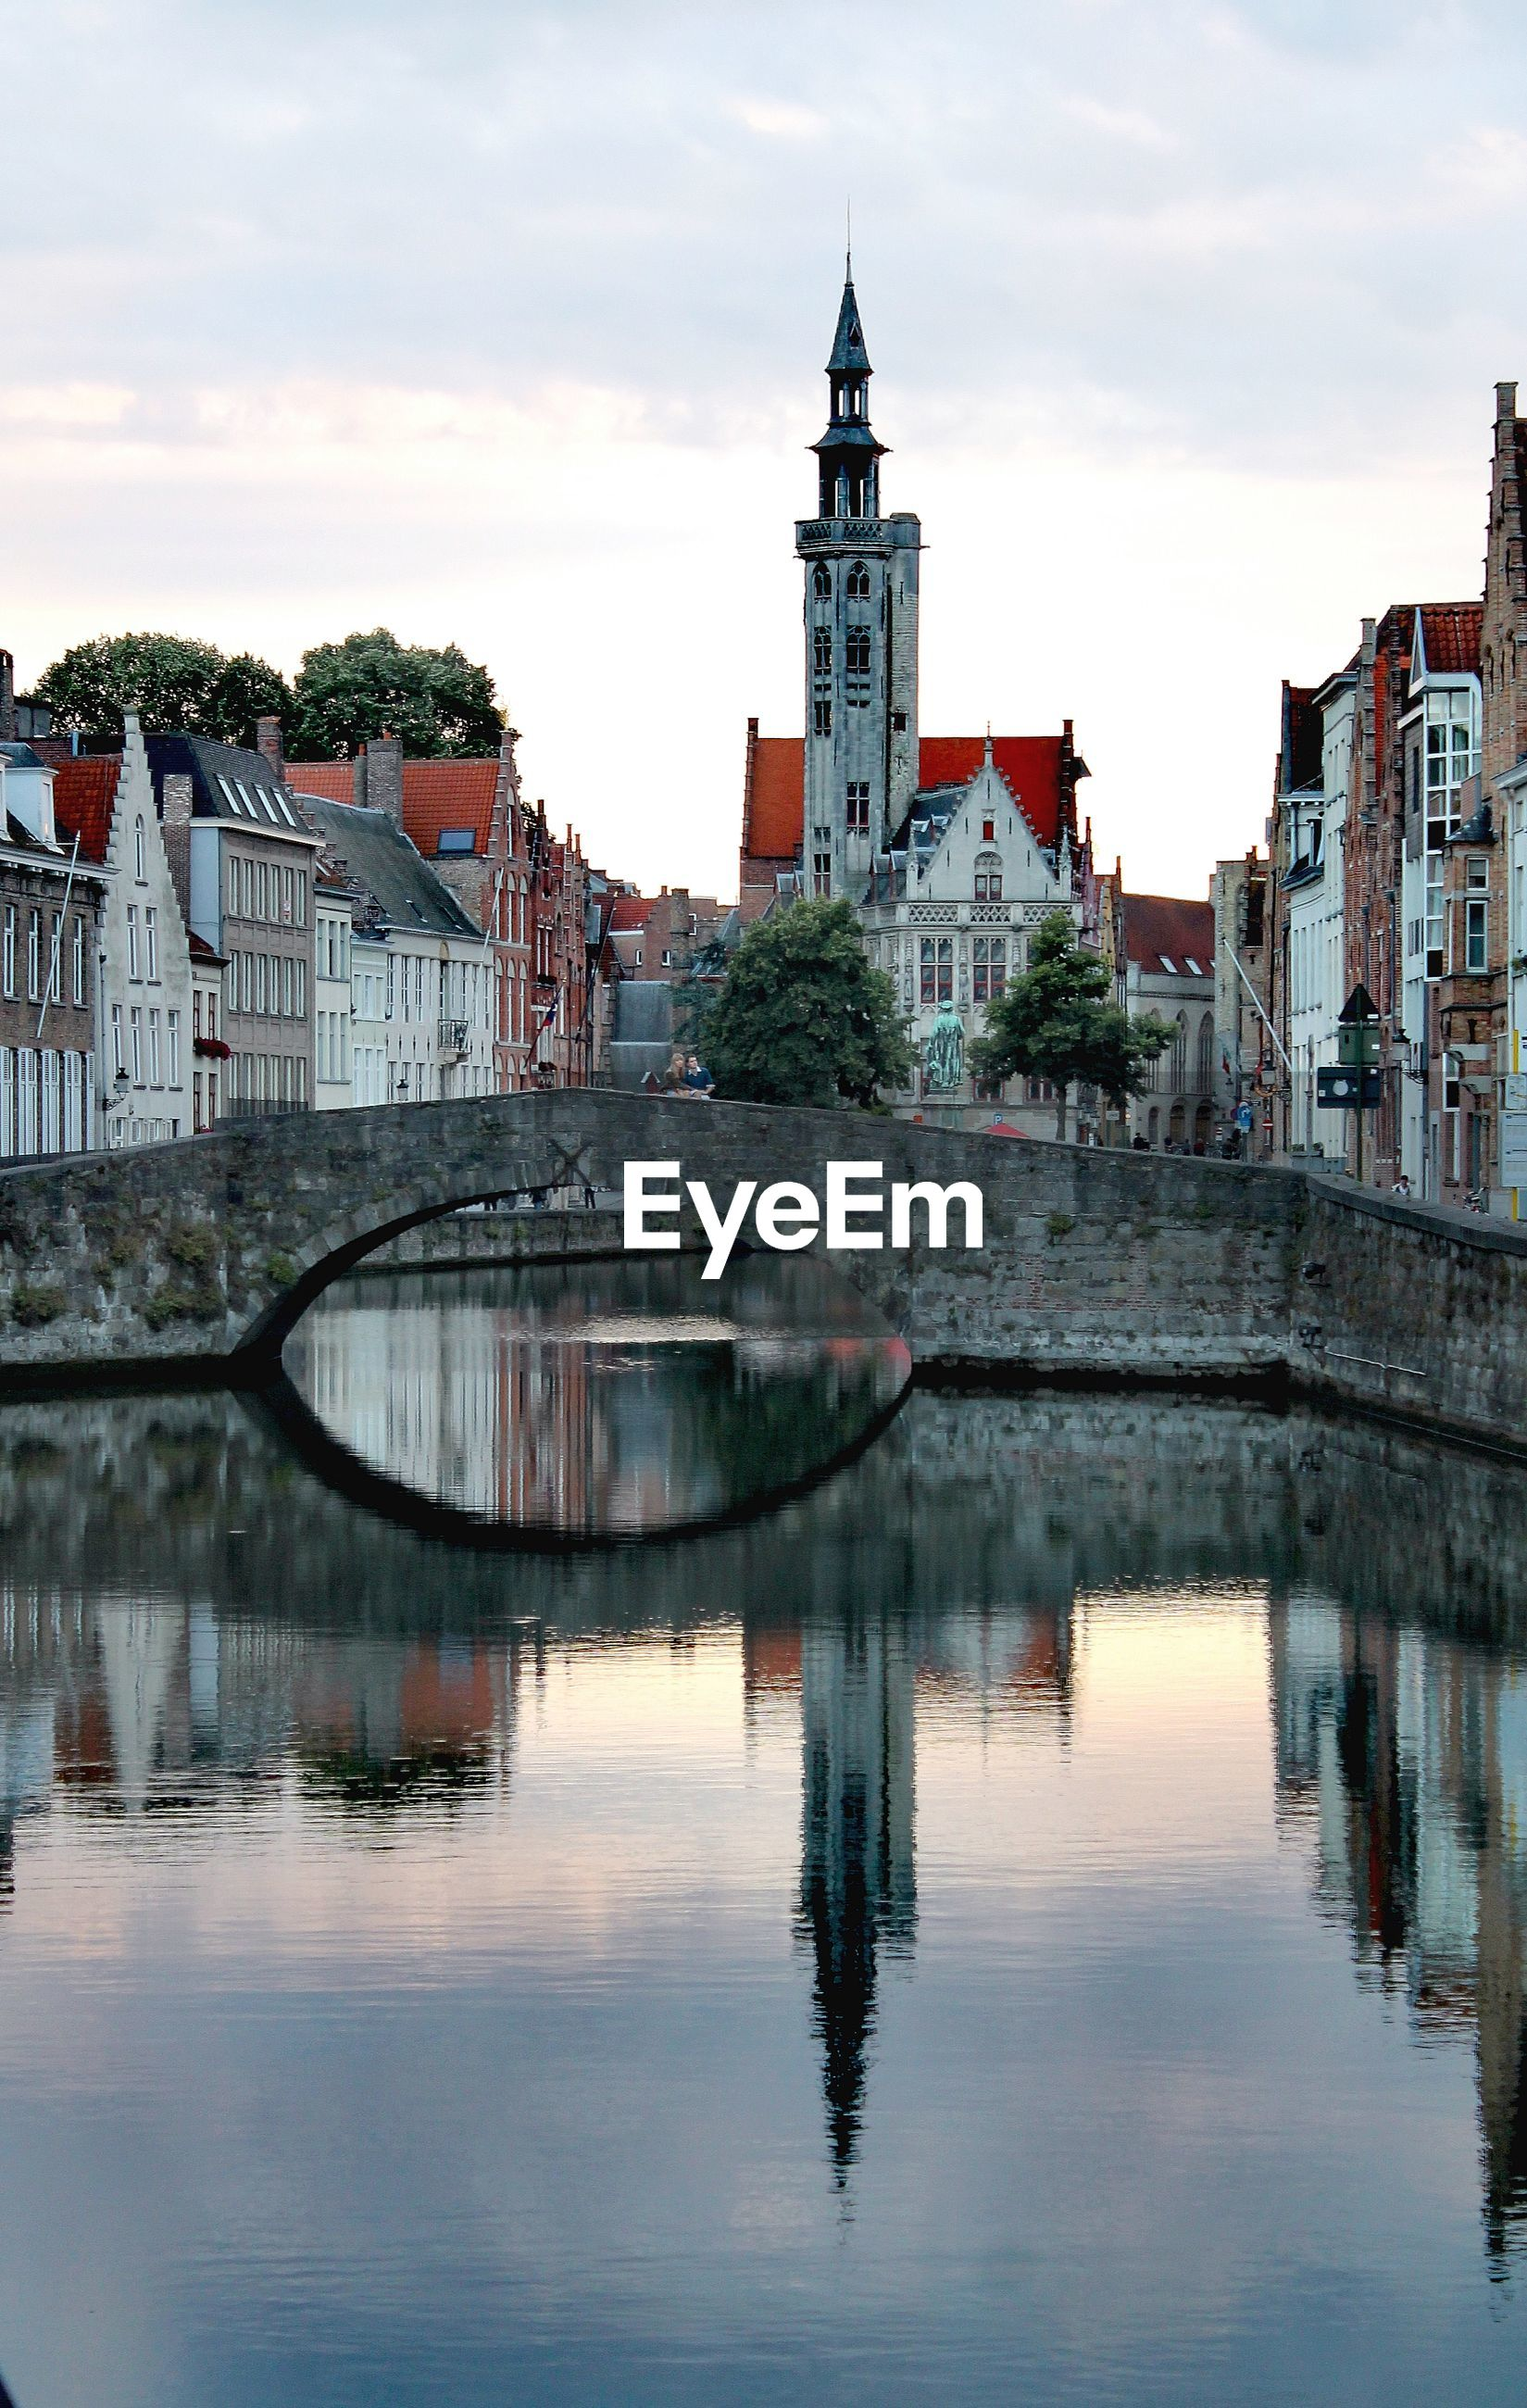 Bridge over the canals of brugge and jan van eick square.